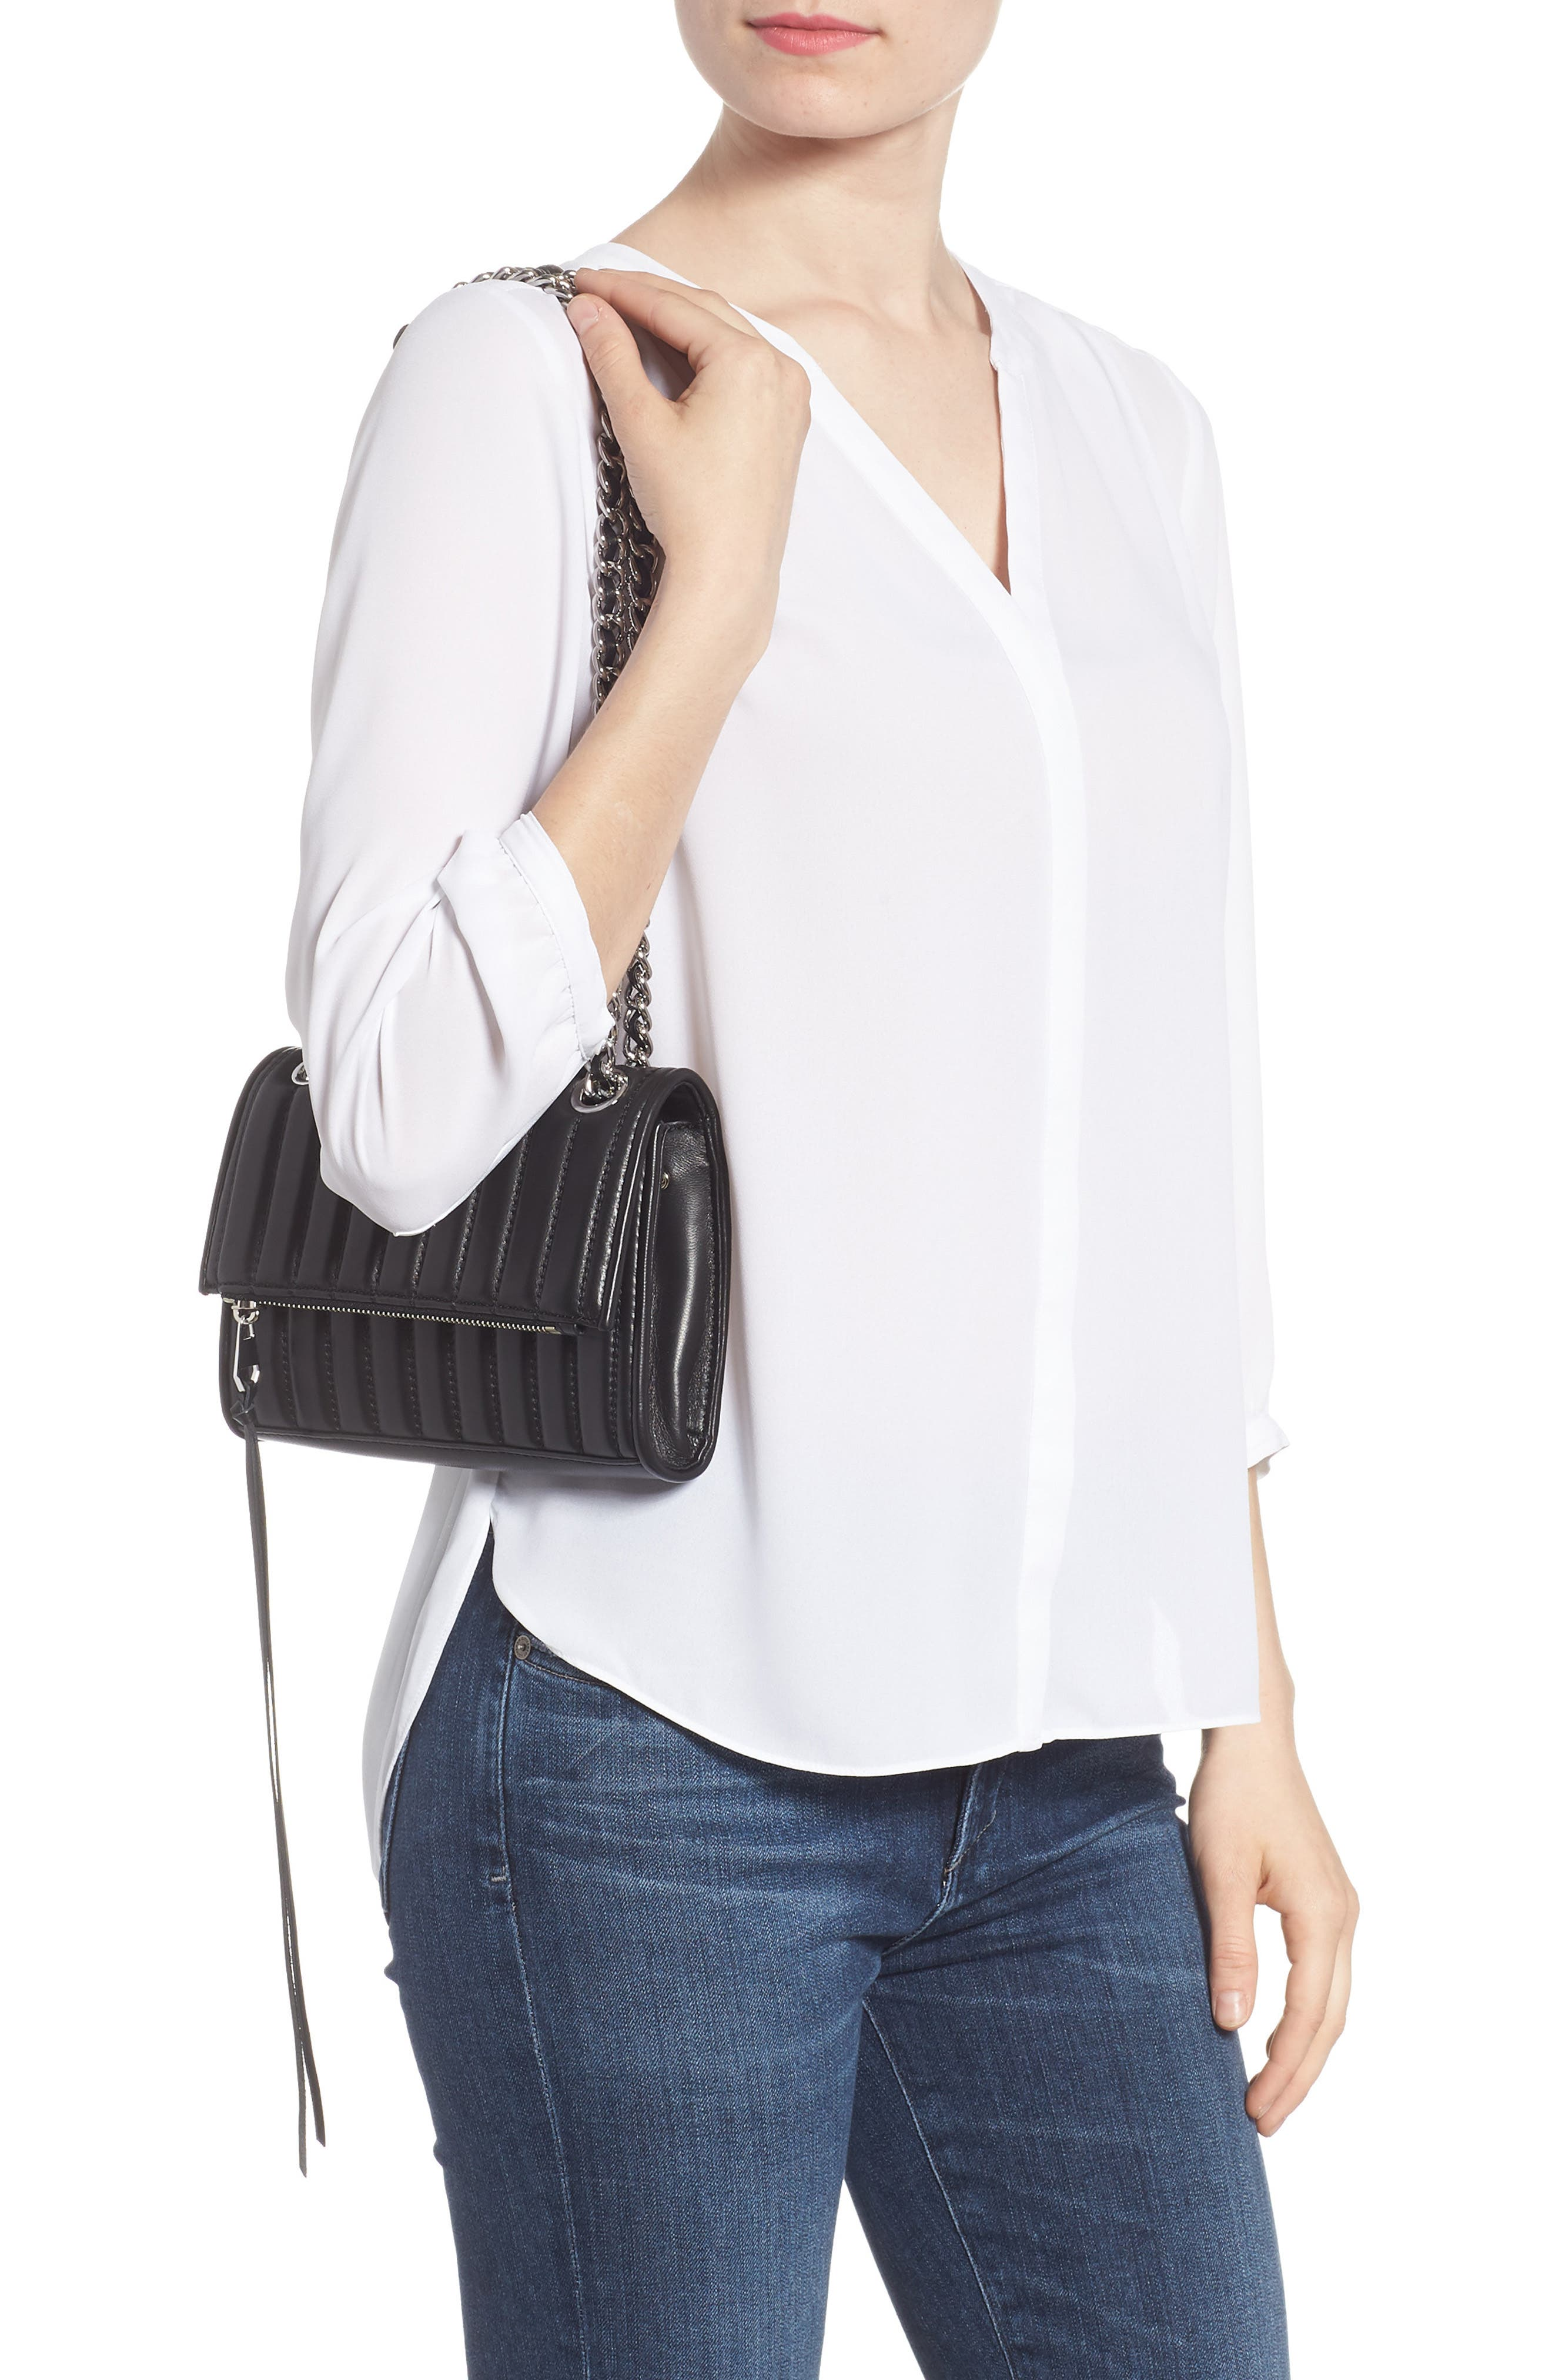 Dylan Quilted Leather Crossbody Bag,                             Alternate thumbnail 2, color,                             001